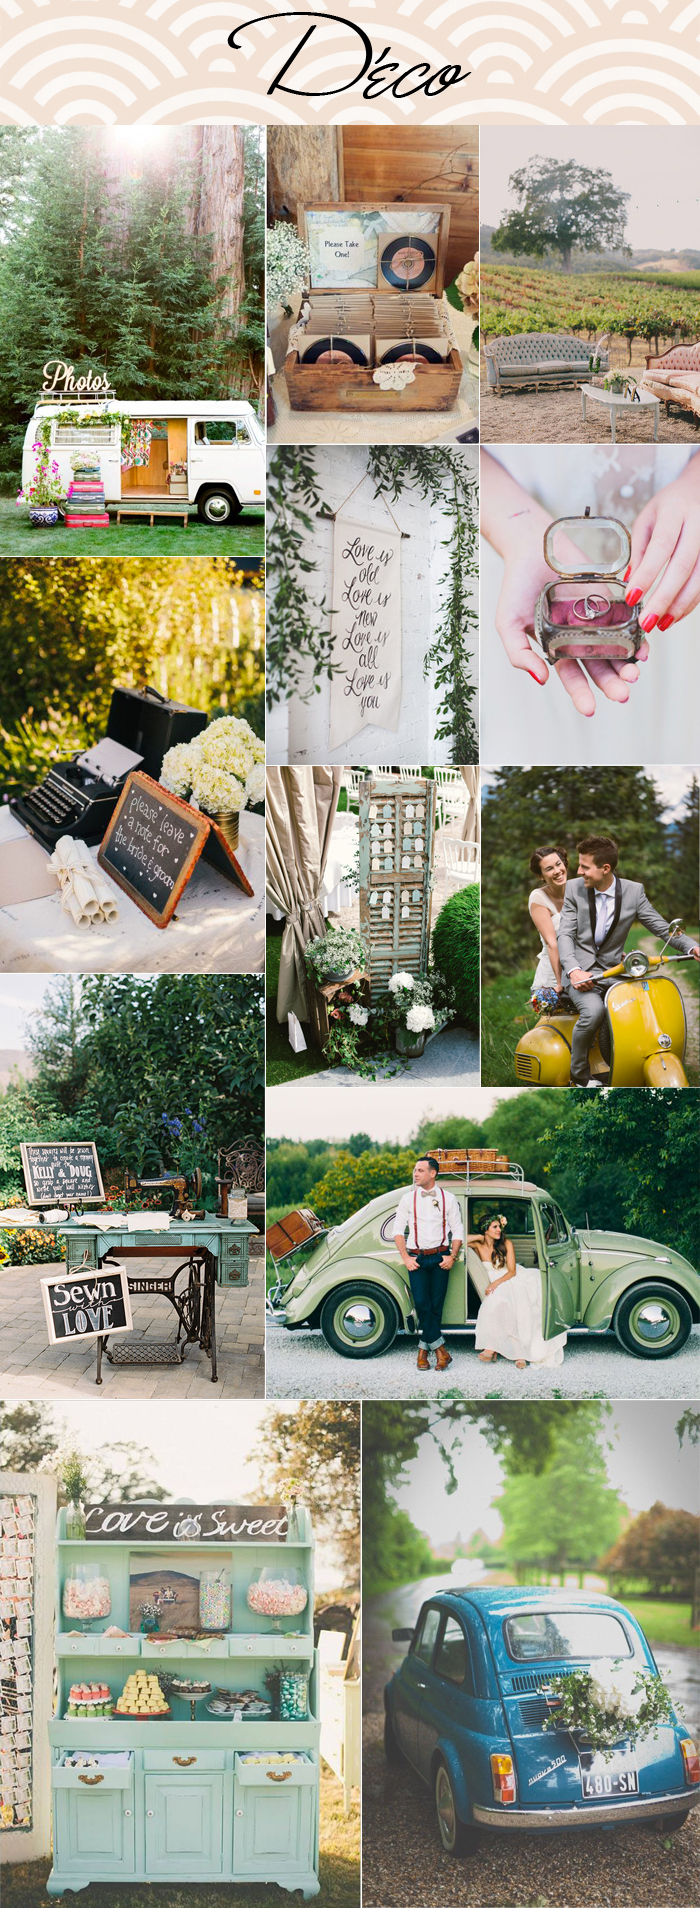 mariage-vintage-inspiration-party-deco-mademoisellclaudine